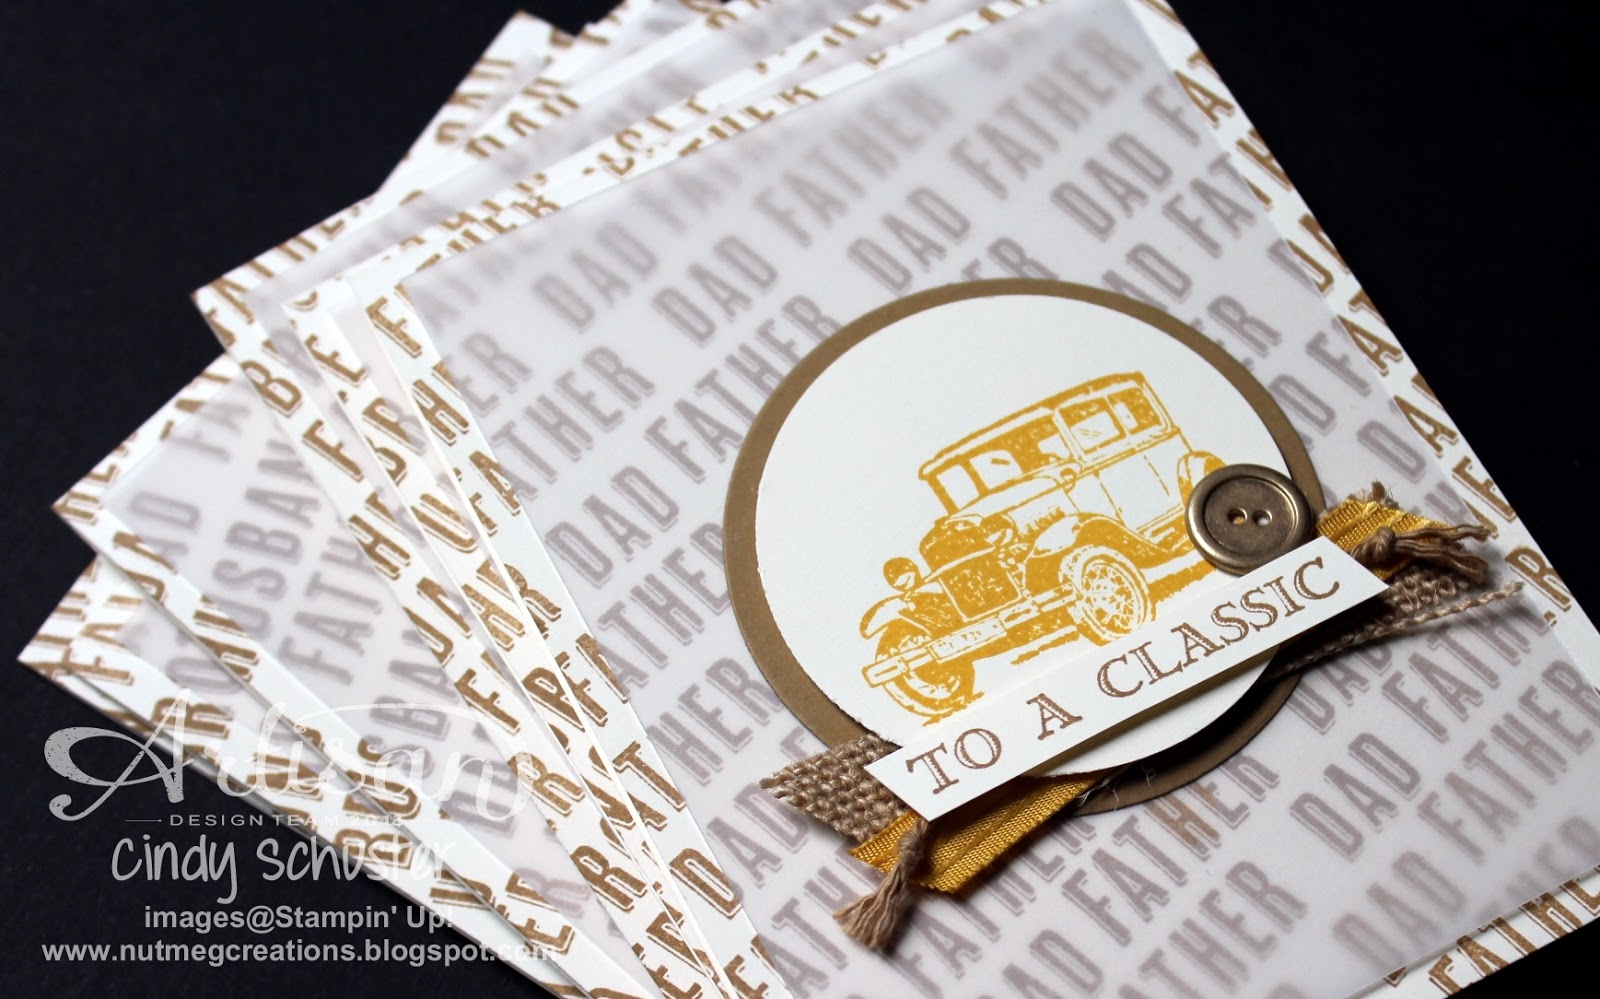 Nutmeg creations stack of guy greetings stampin up artisan blog hop welcome back to the artisan design team blog hop we are finishing up on our april 2015 box from stampin up this box was full of more brand new products kristyandbryce Images